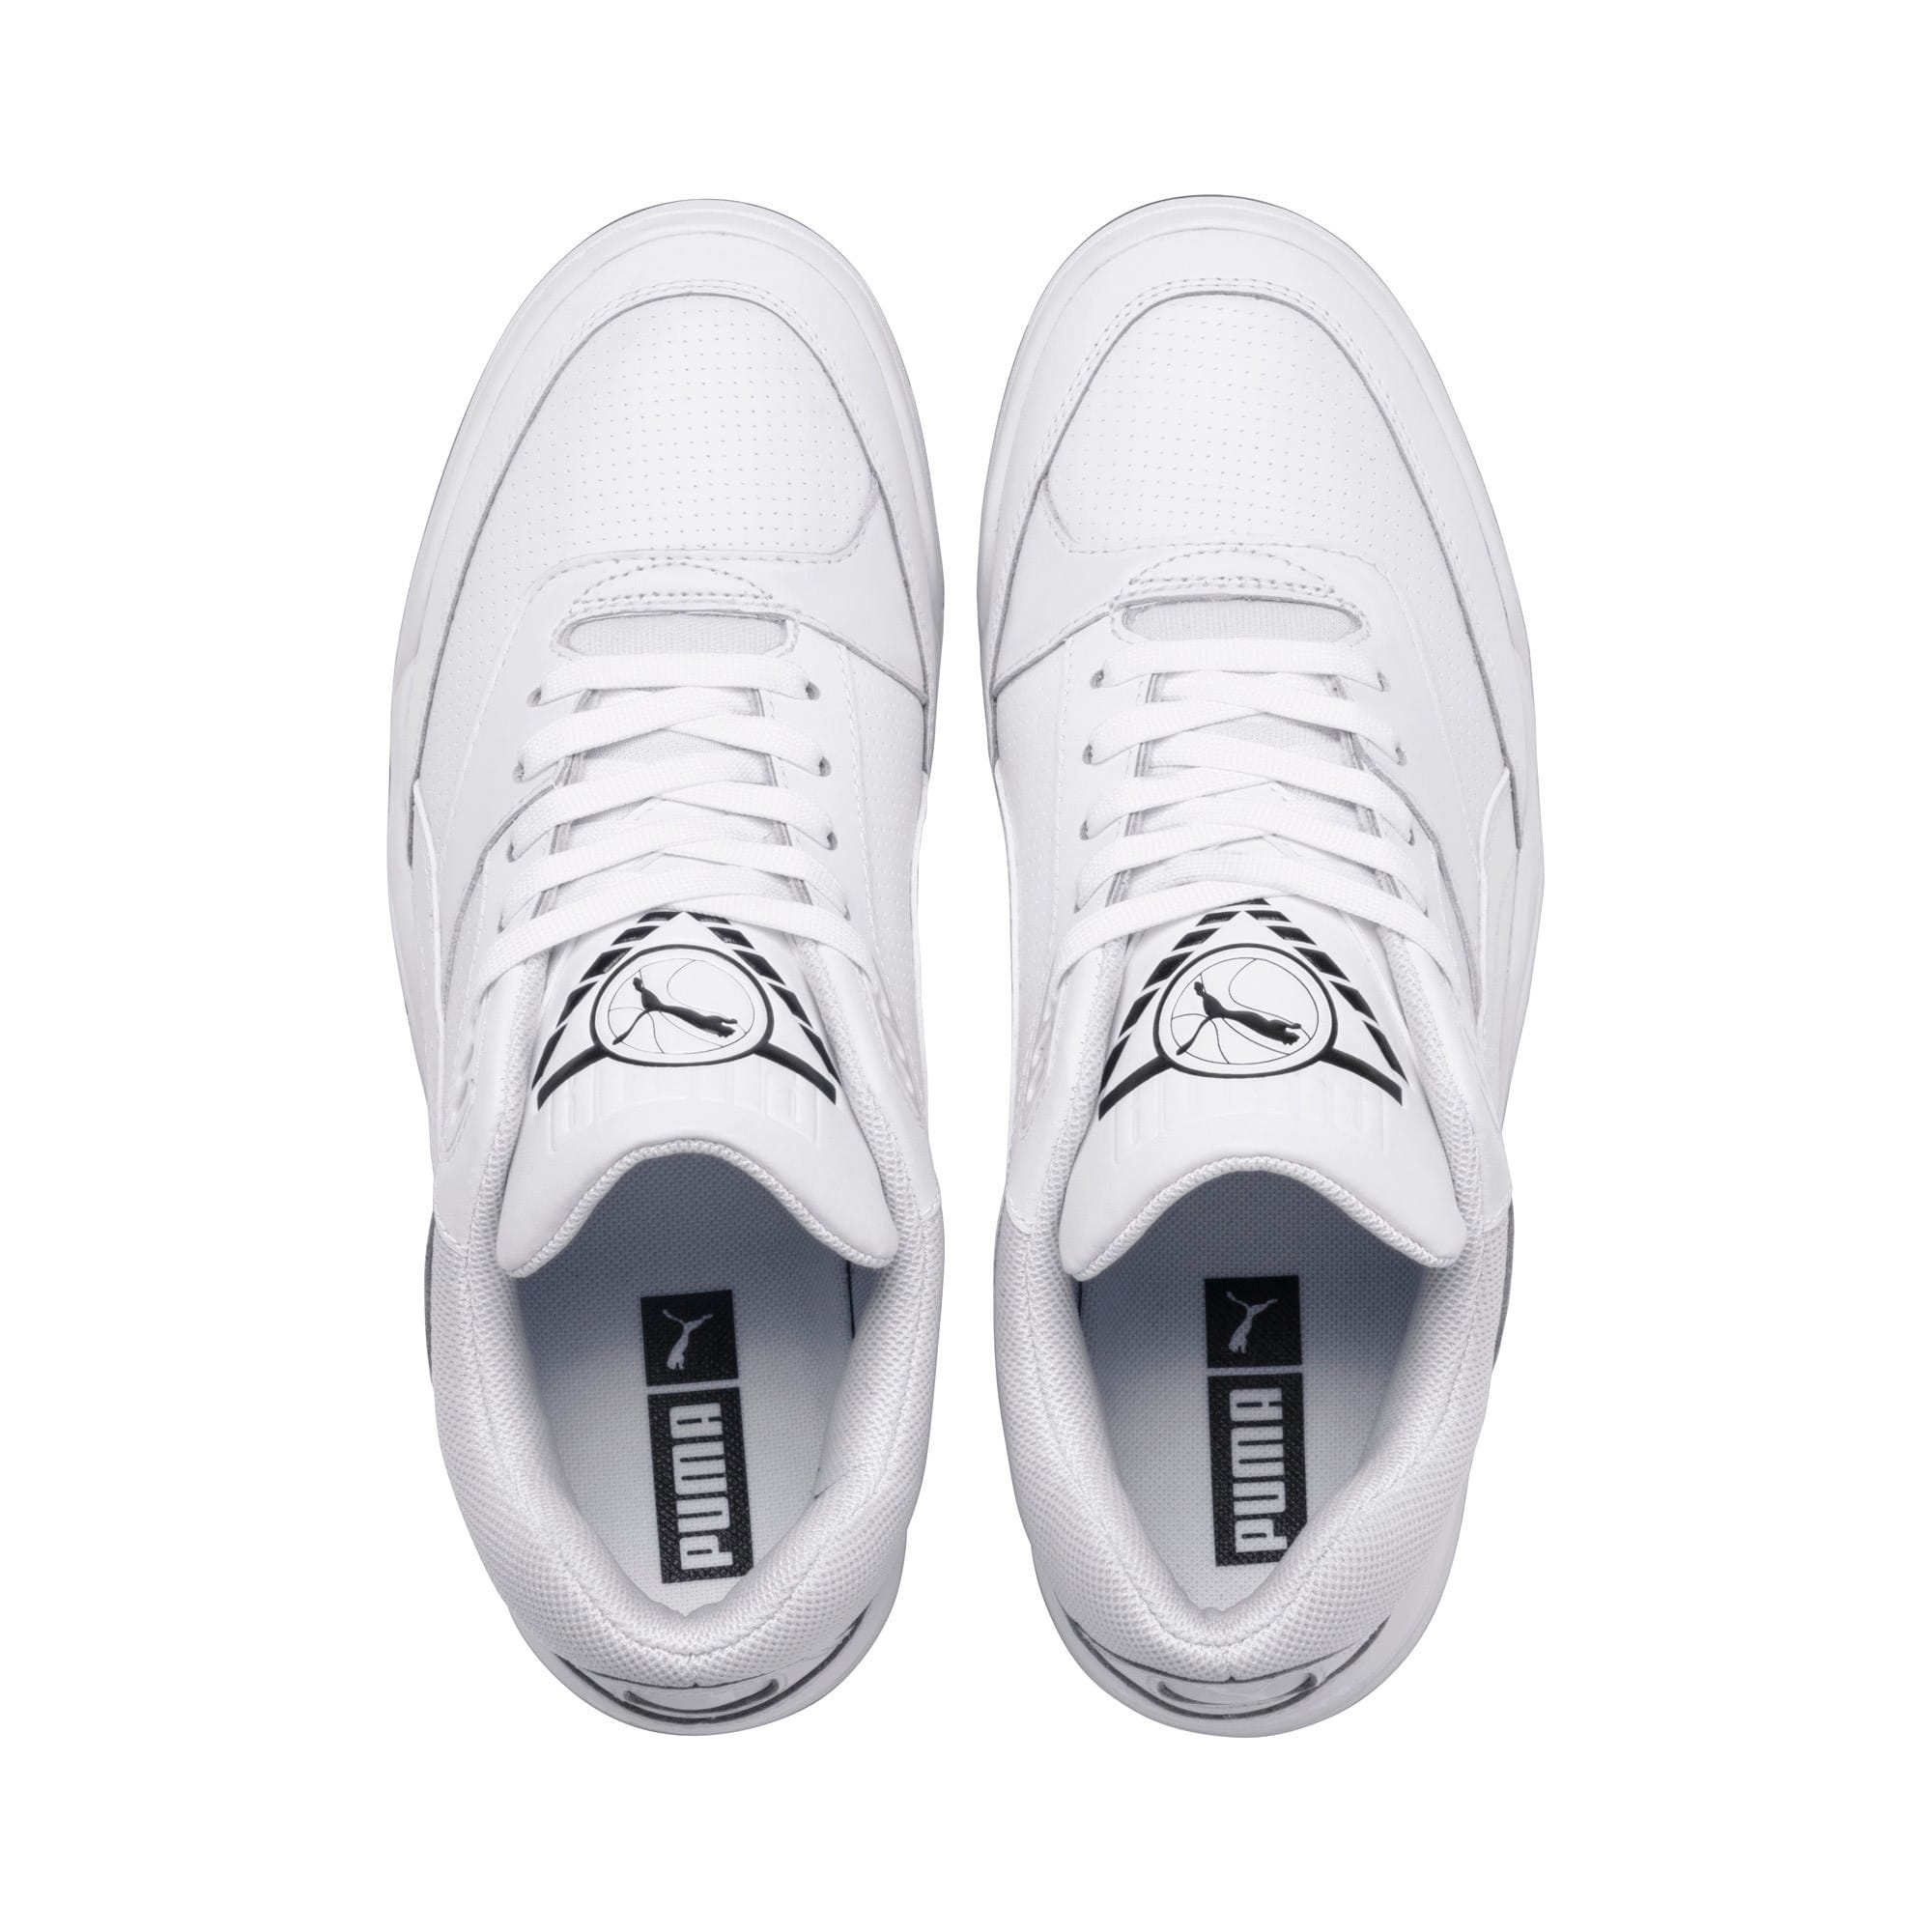 Anteprima 6 di Palace Guard Men's Basketball Trainers, Puma White-Puma White-Gum, medio